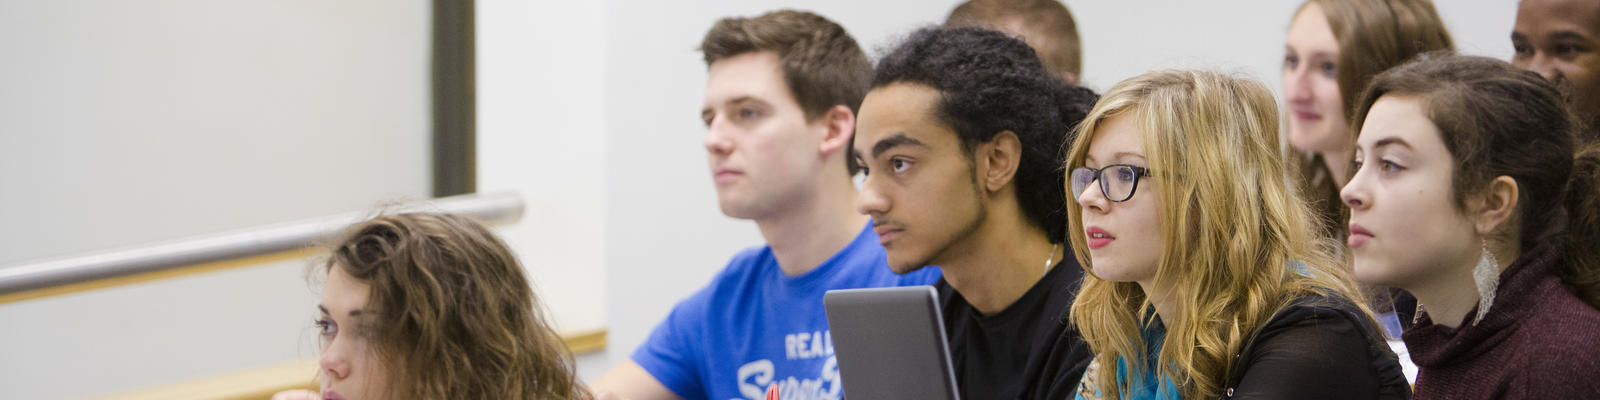 Students listen during a lecture